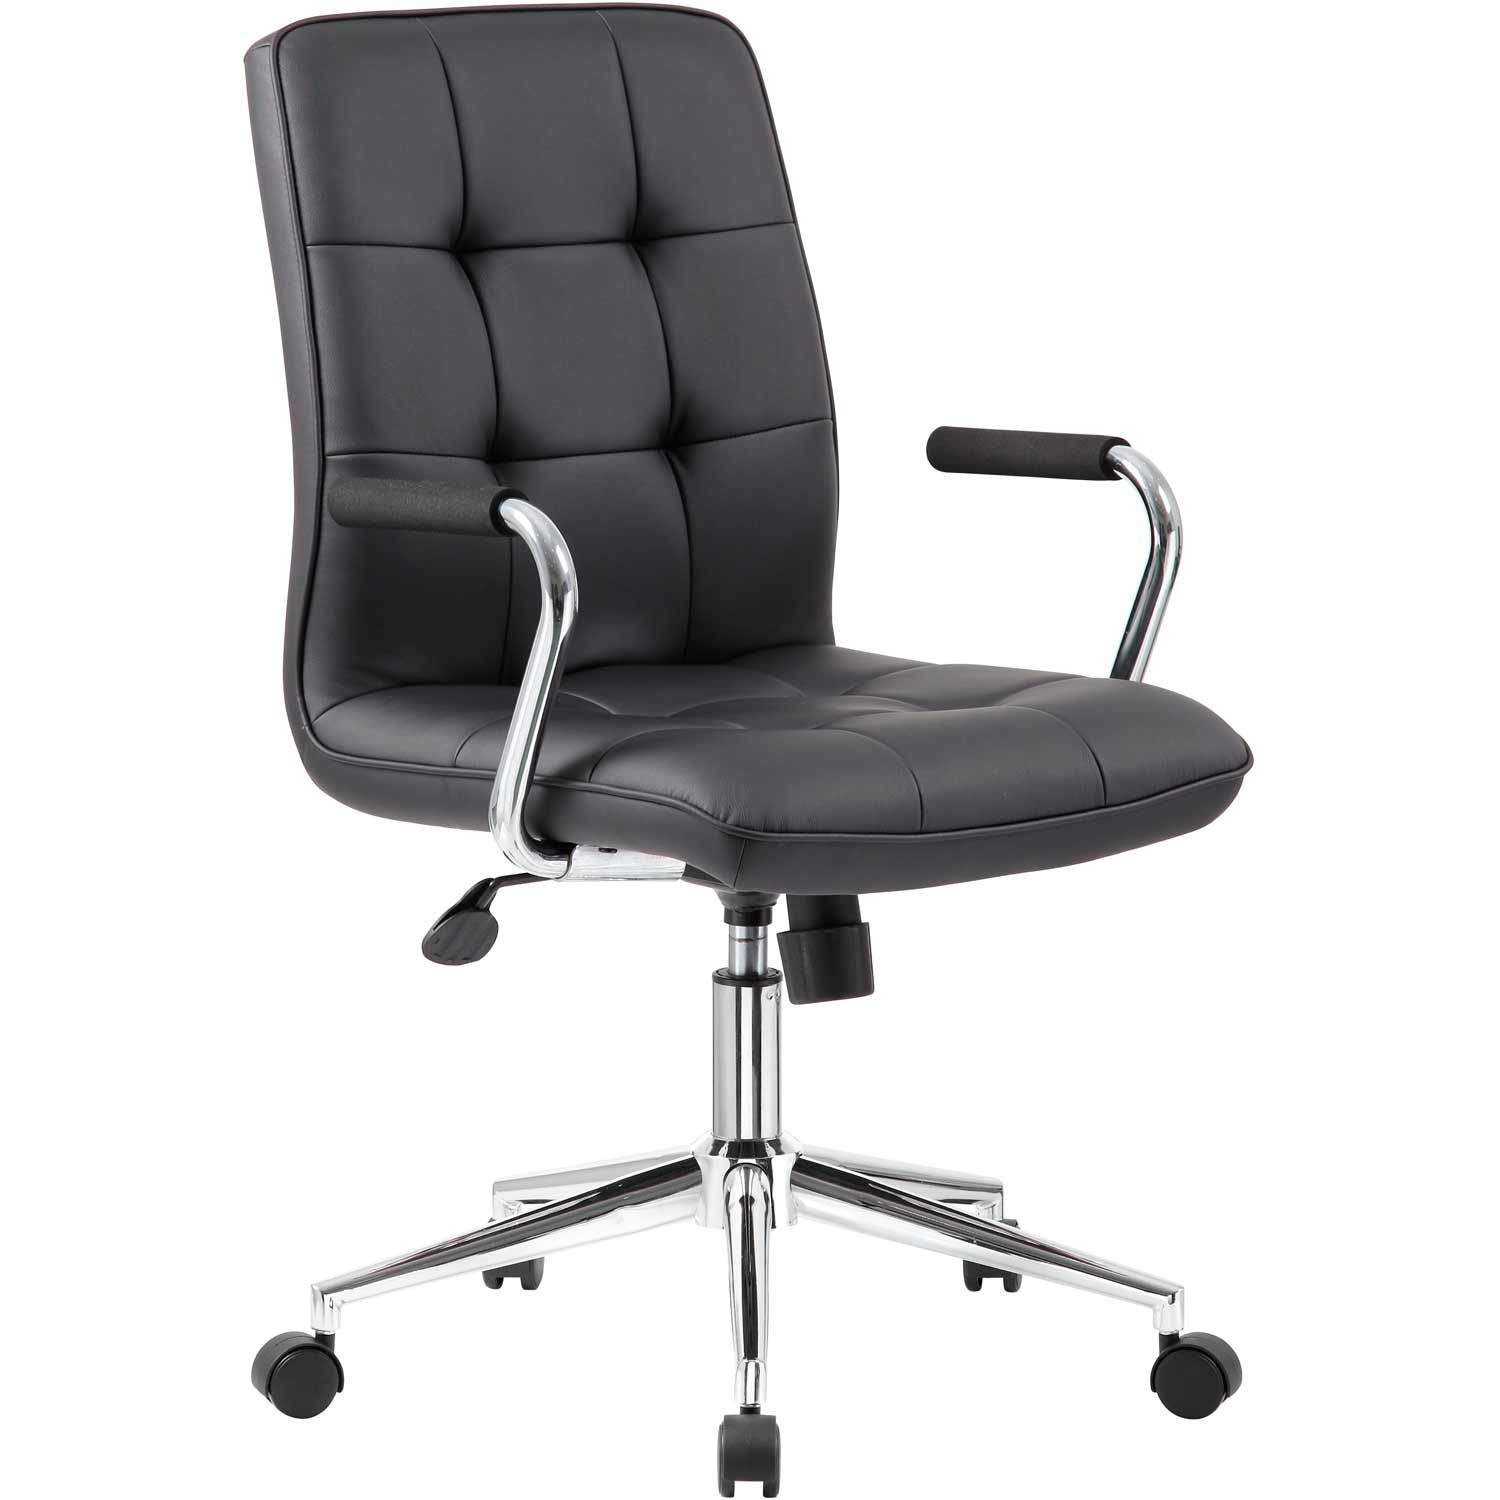 Superb Chairs Vinyl Upholstered Boss Modern Office Chair With Interior Design Ideas Gentotryabchikinfo